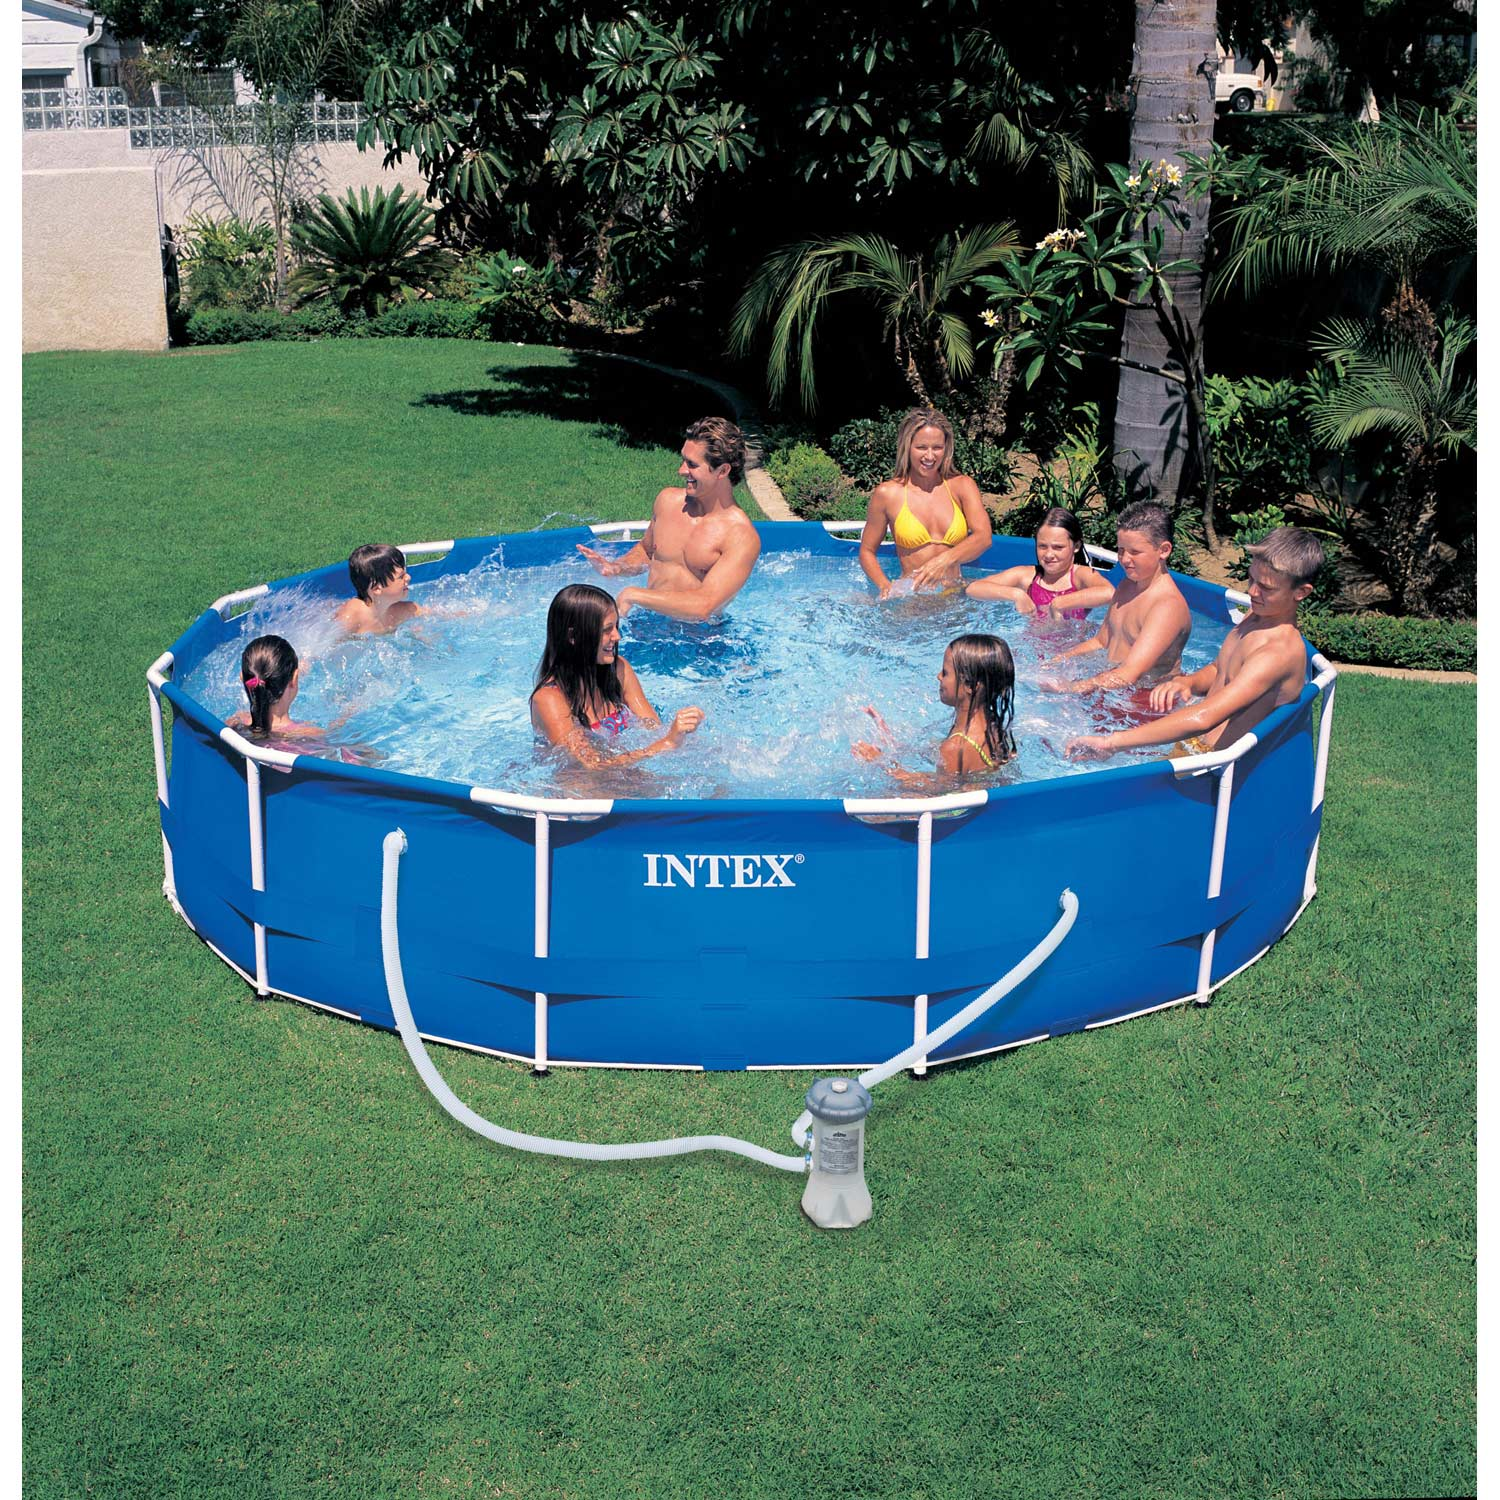 Piscine hors sol autoportante tubulaire metal frame intex for Piscine exterieure hors sol